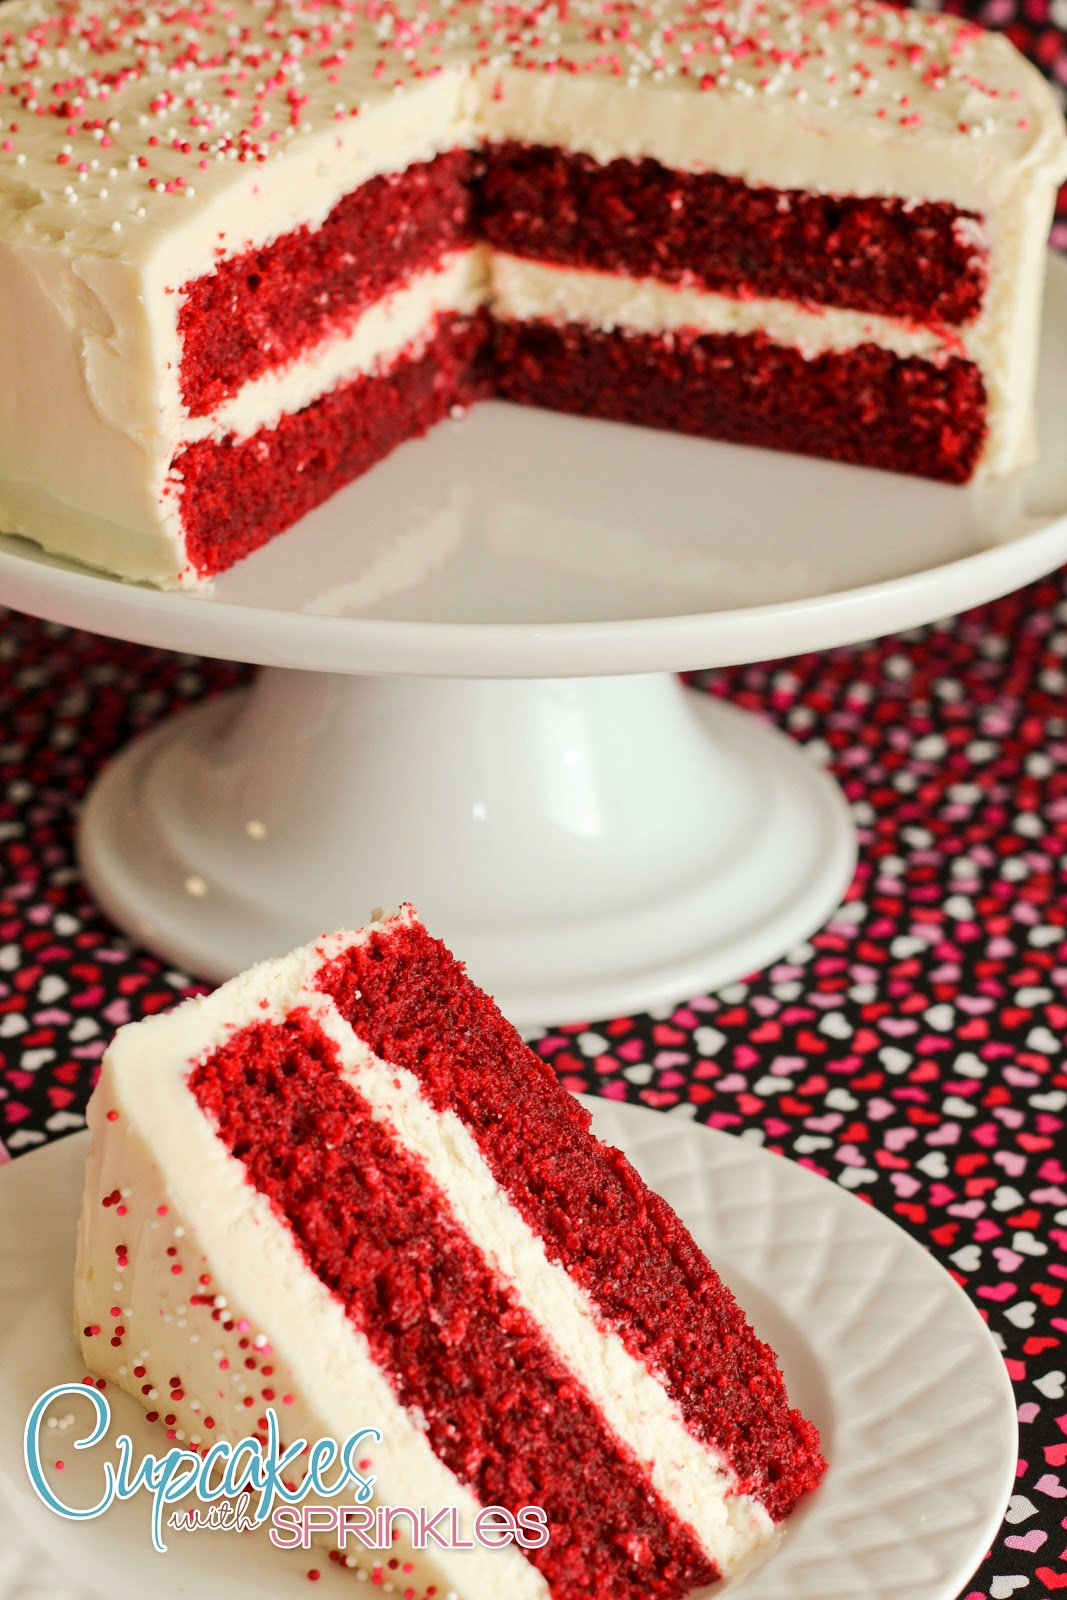 Red Velvet Cake Recipe ...with cream cheese frosting!